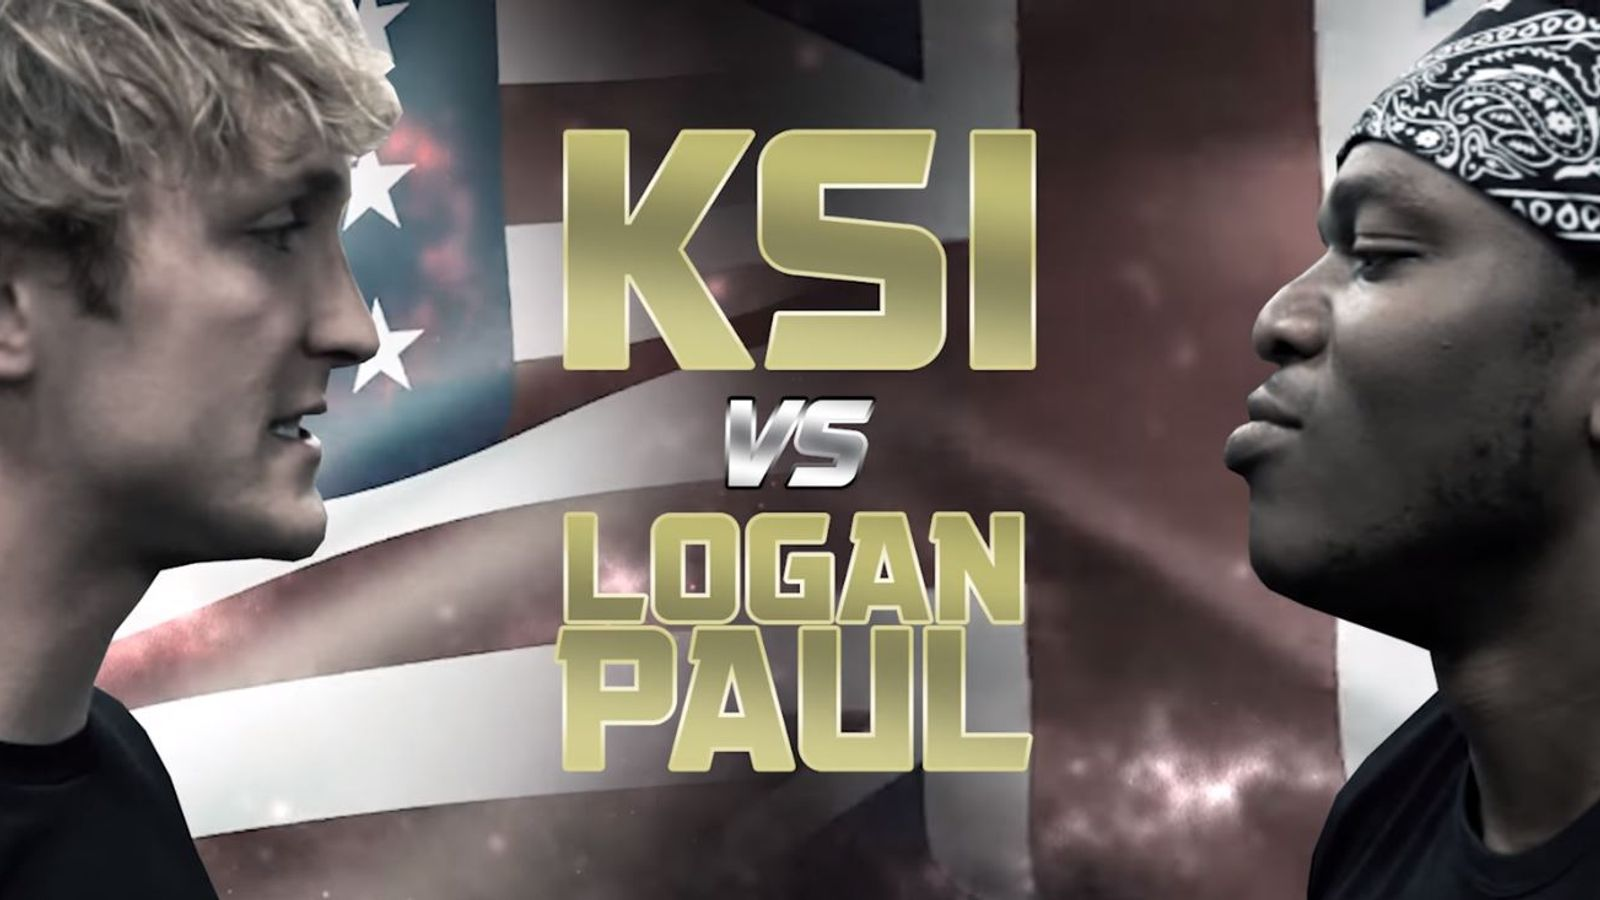 YouTubers Logan Paul and KSI to fight in UK